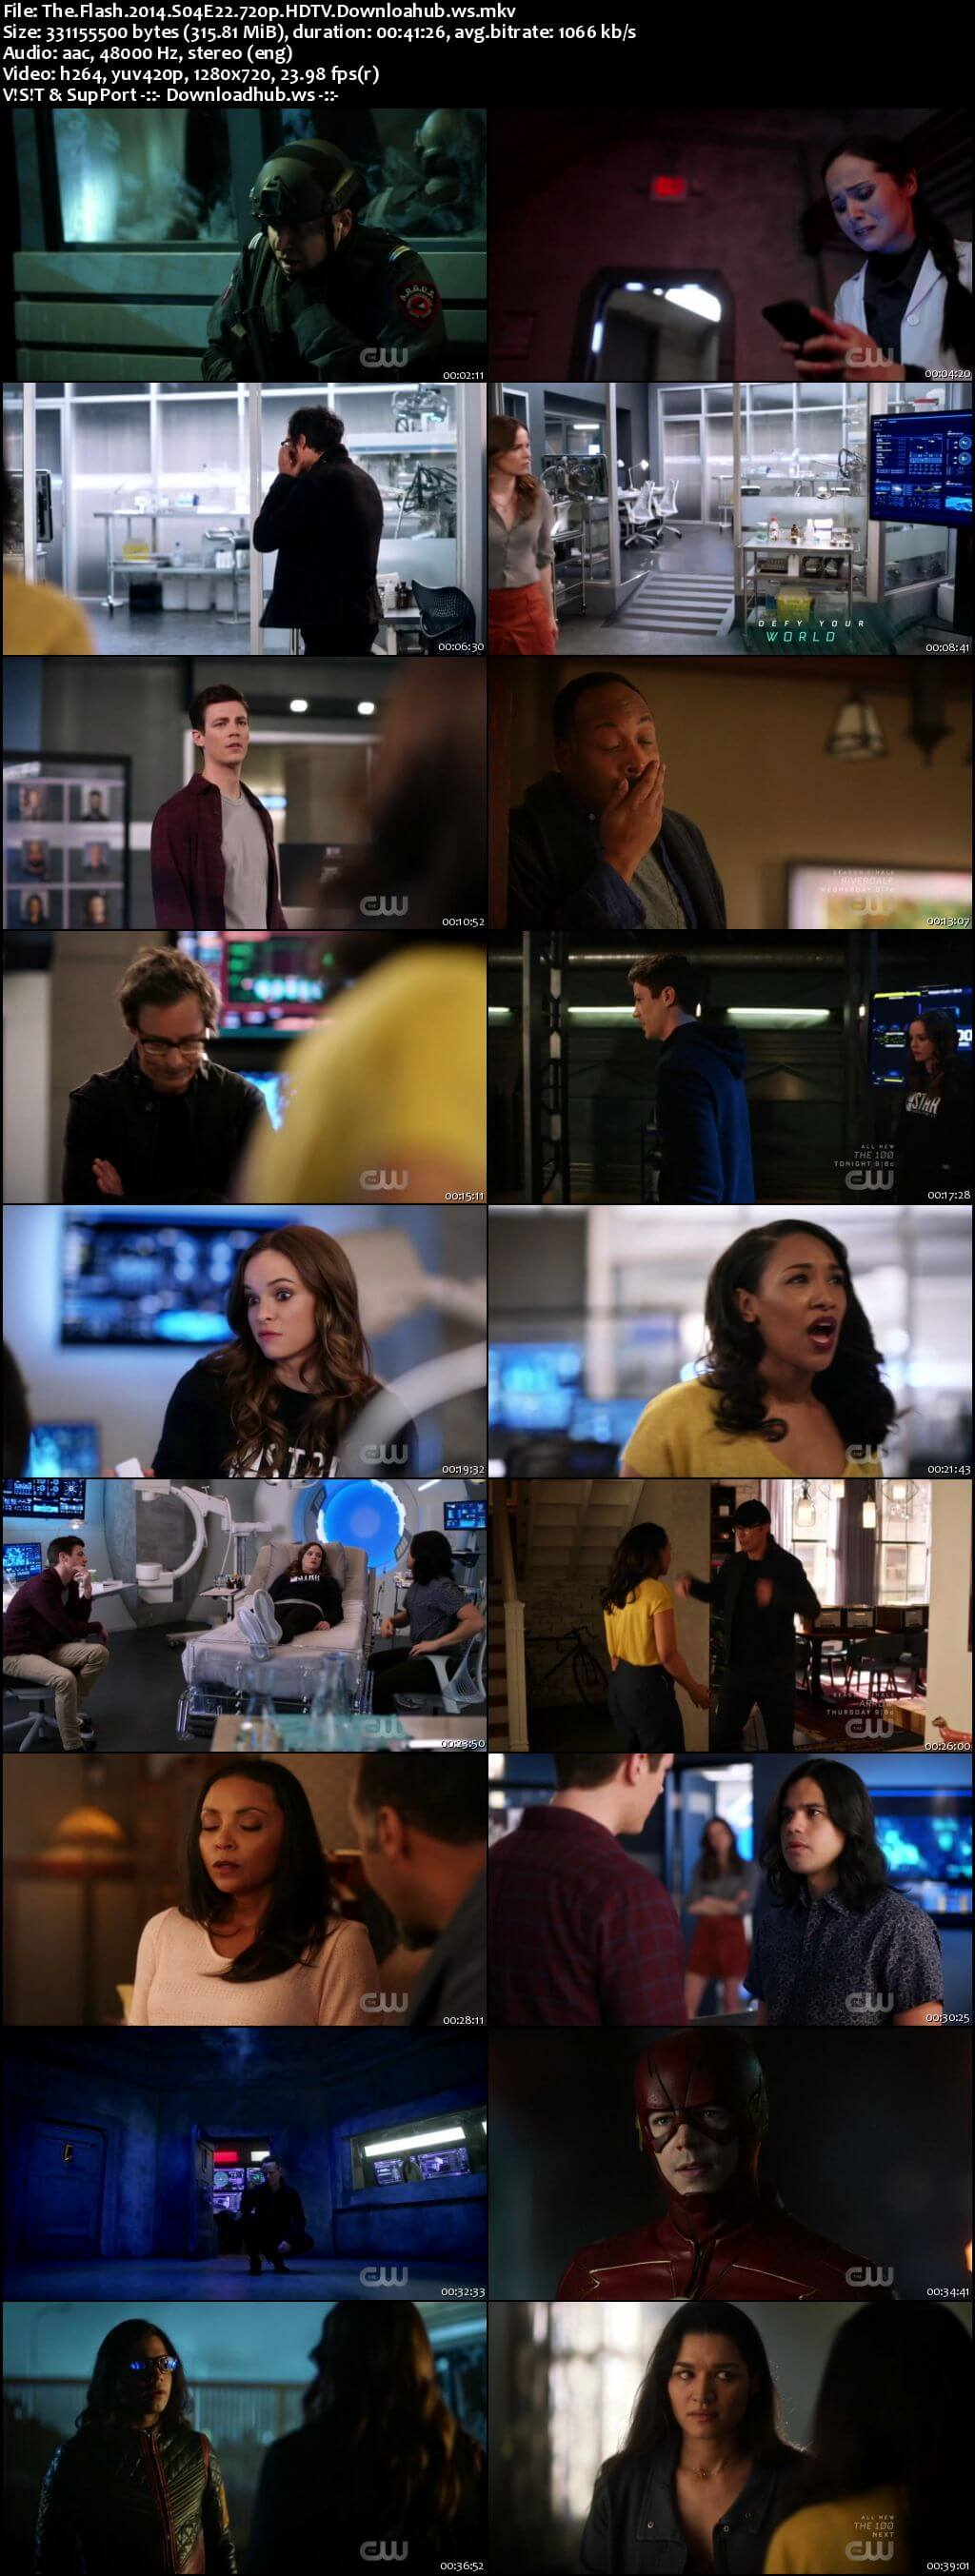 The Flash S04E22 300MB HDTV 720p x264